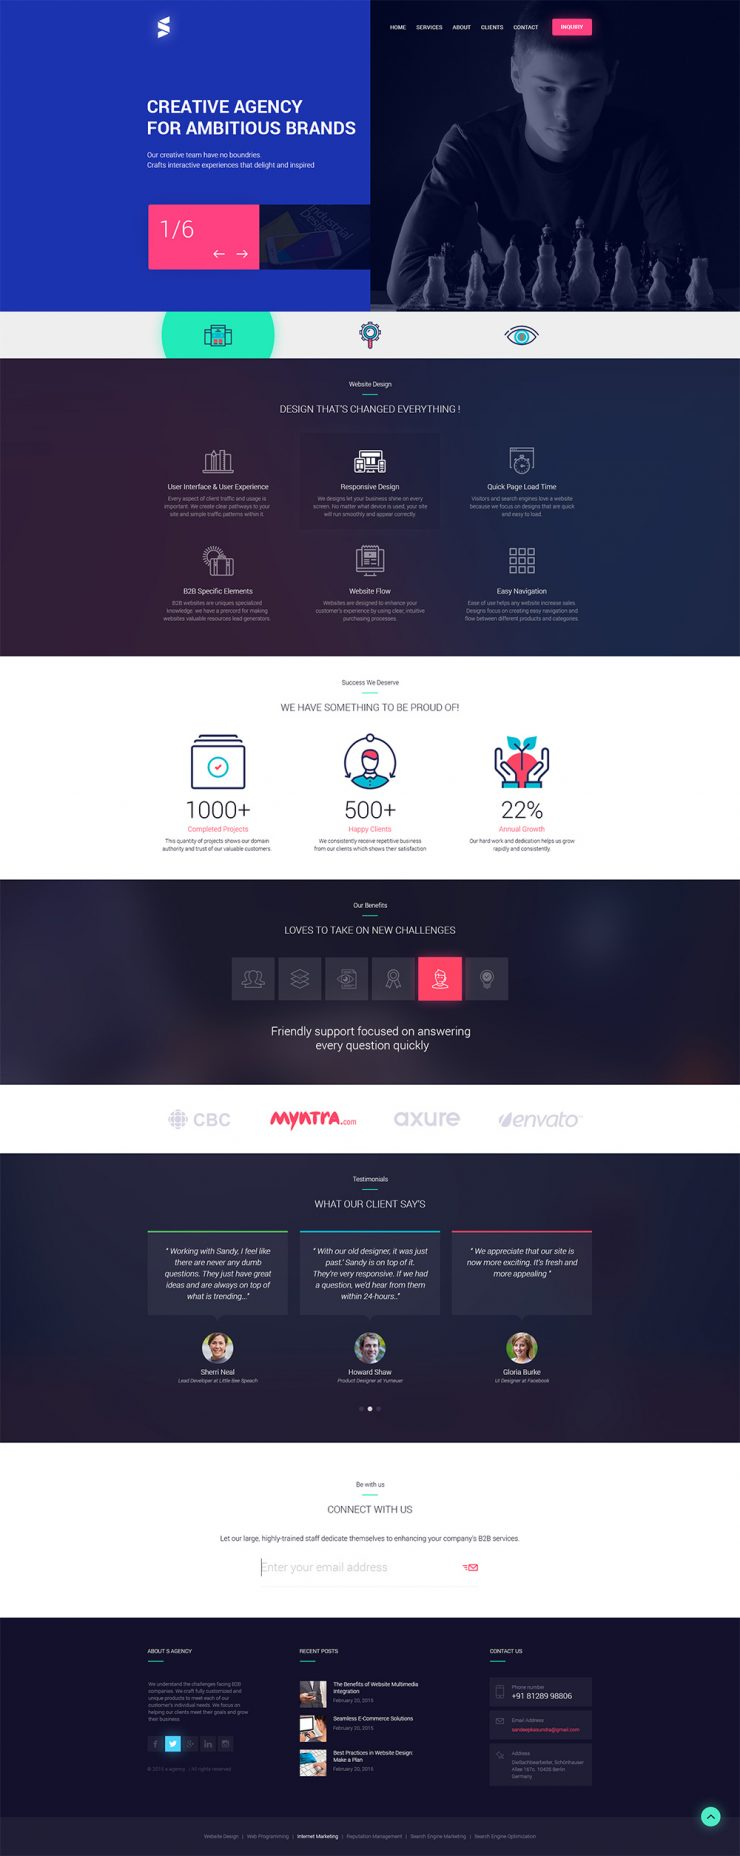 Creative Design Agencies Website Template Free PSD